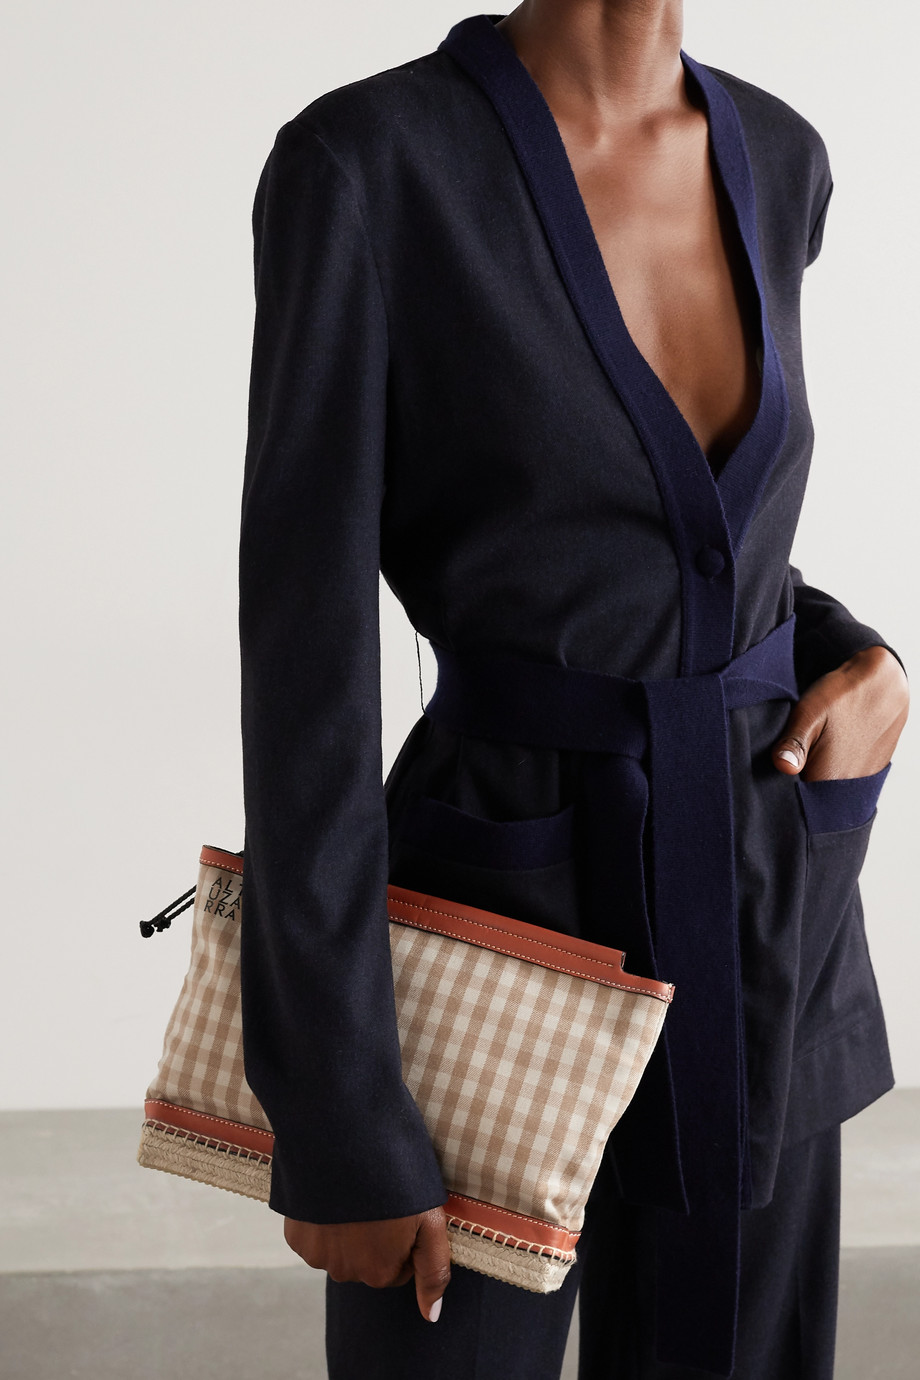 ALTUZARRA Espadrille leather and jute-trimmed gingham twill clutch